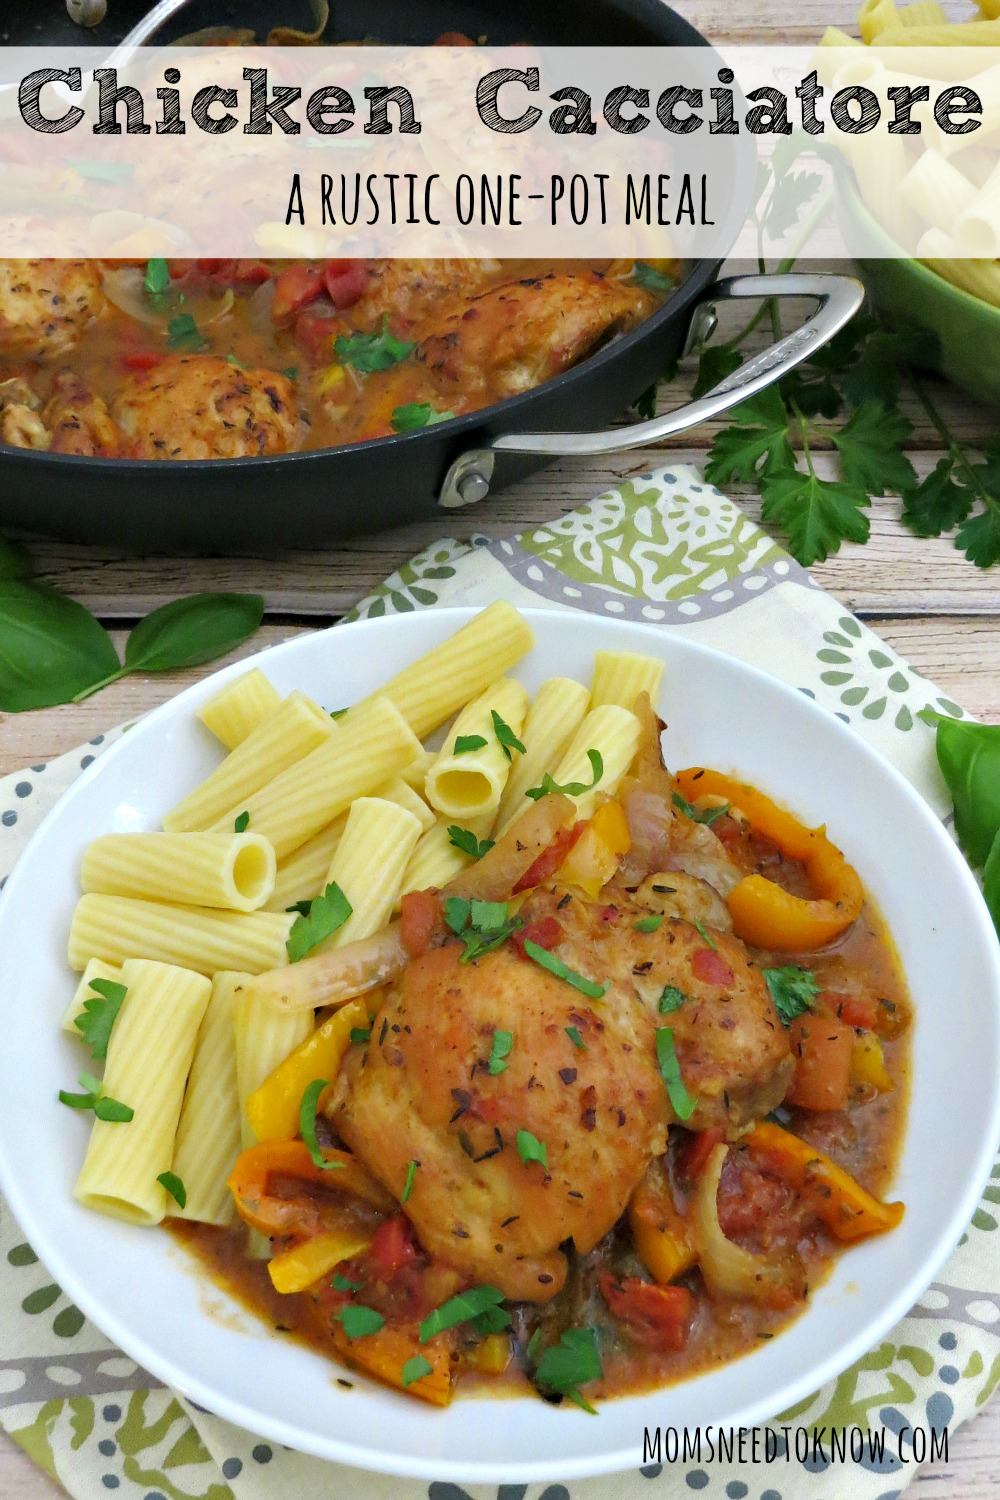 Chicken cacciatore is a one-pot, rustic dish that's comforting and absolutely delicious. And you don't have to be intimidated by the fancy name. It's incredibly easy to make!